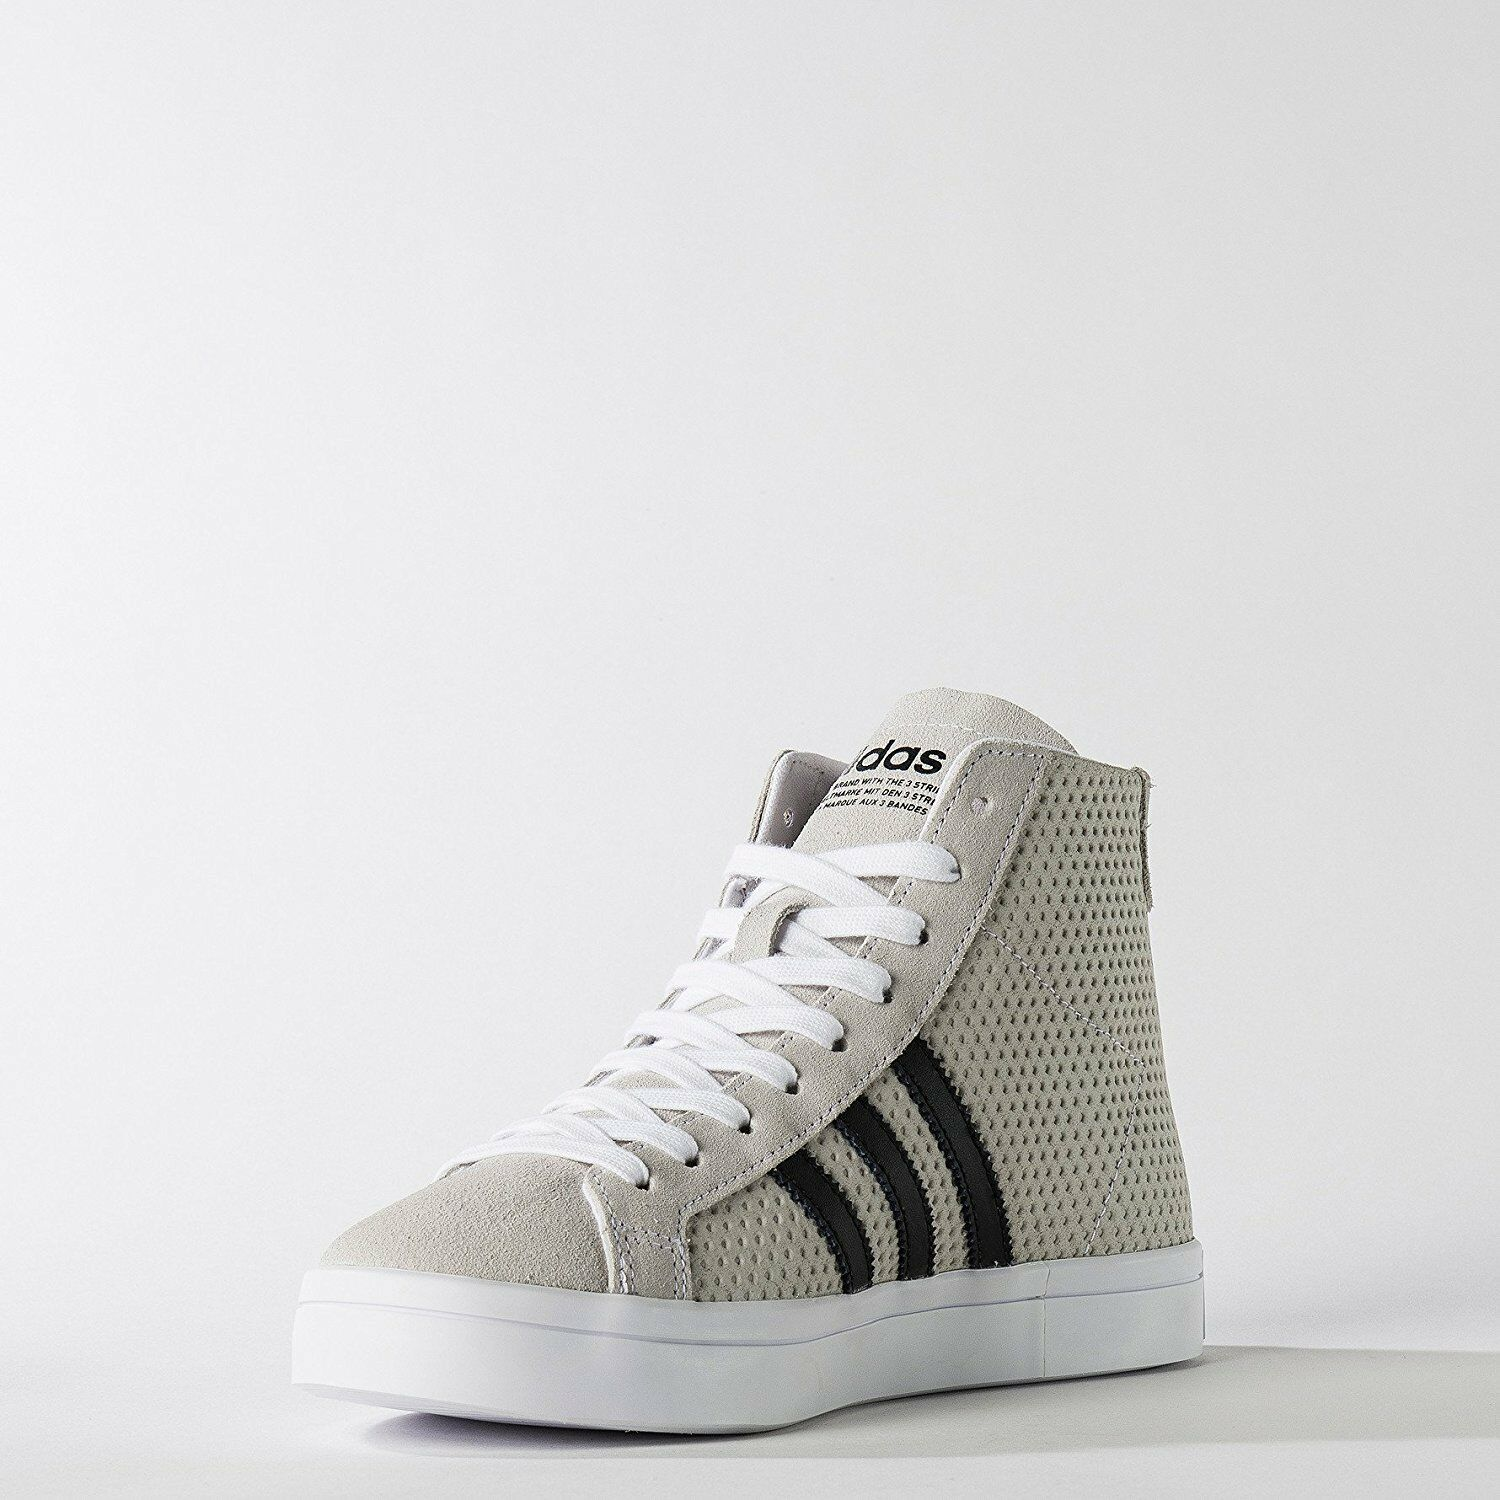 ~nib~Adidas COURT VANTAGE MID Shoes Honey Courtvantage Superstar~Womens size 8.5